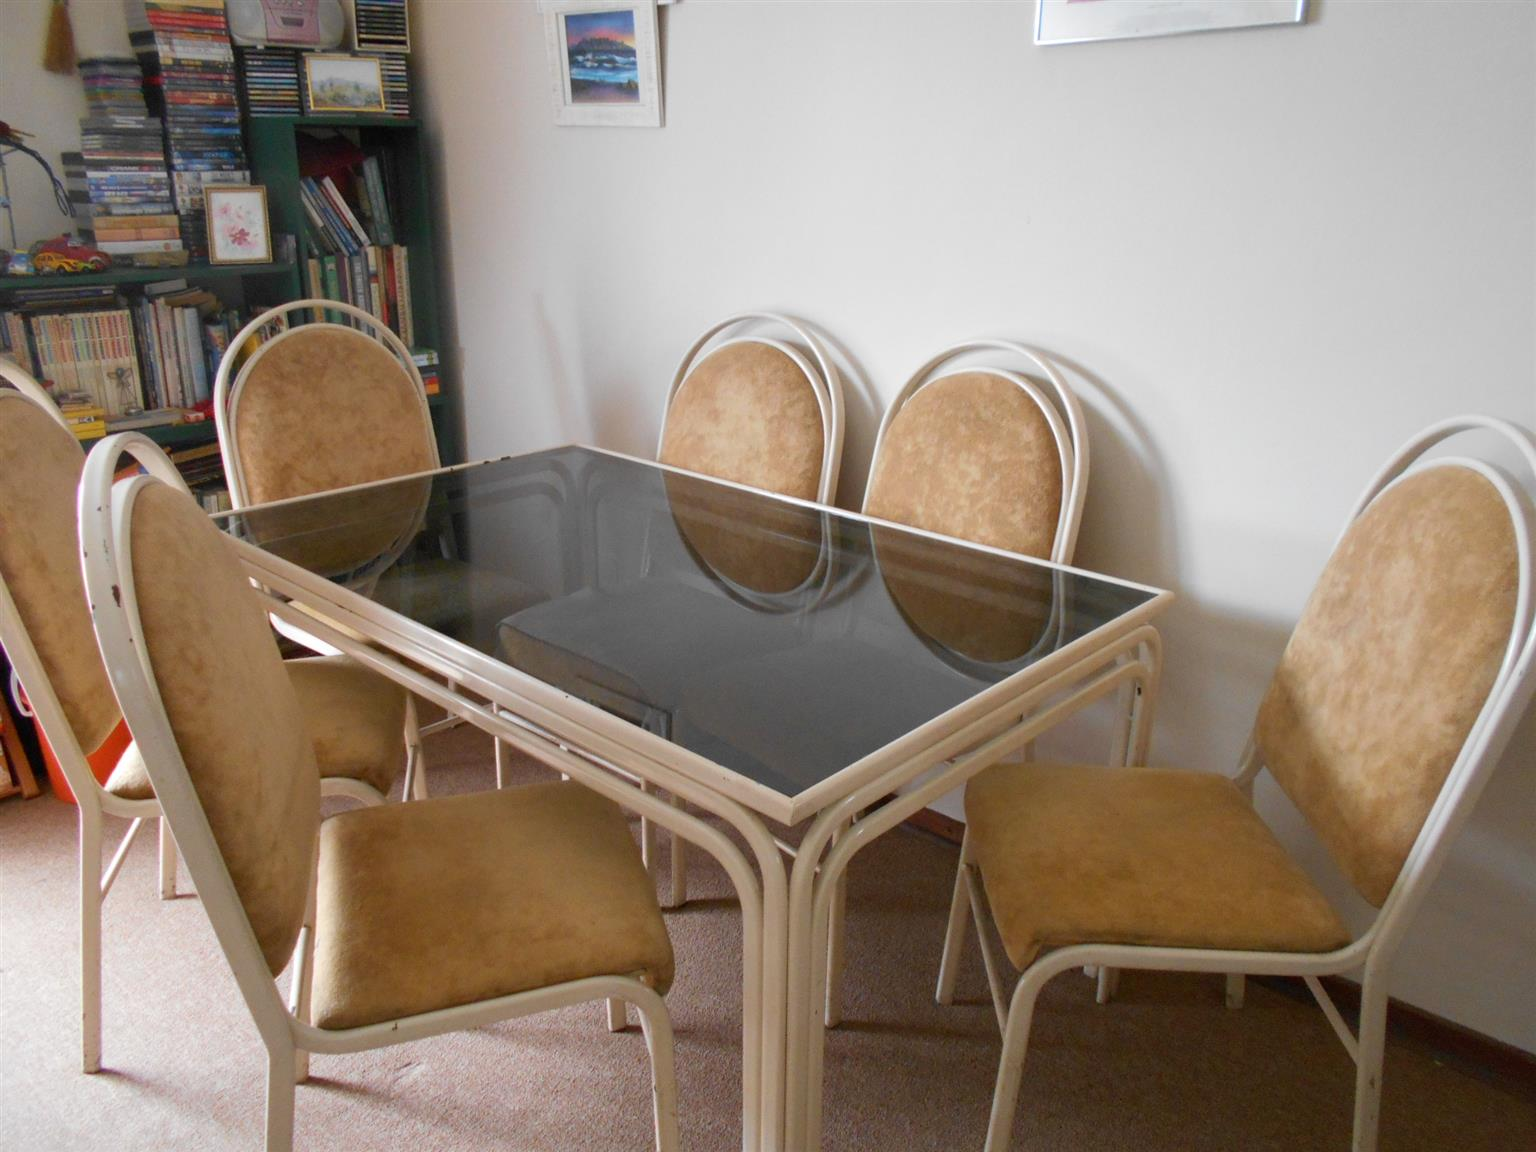 6 Seater Diningroom Suite For Sale